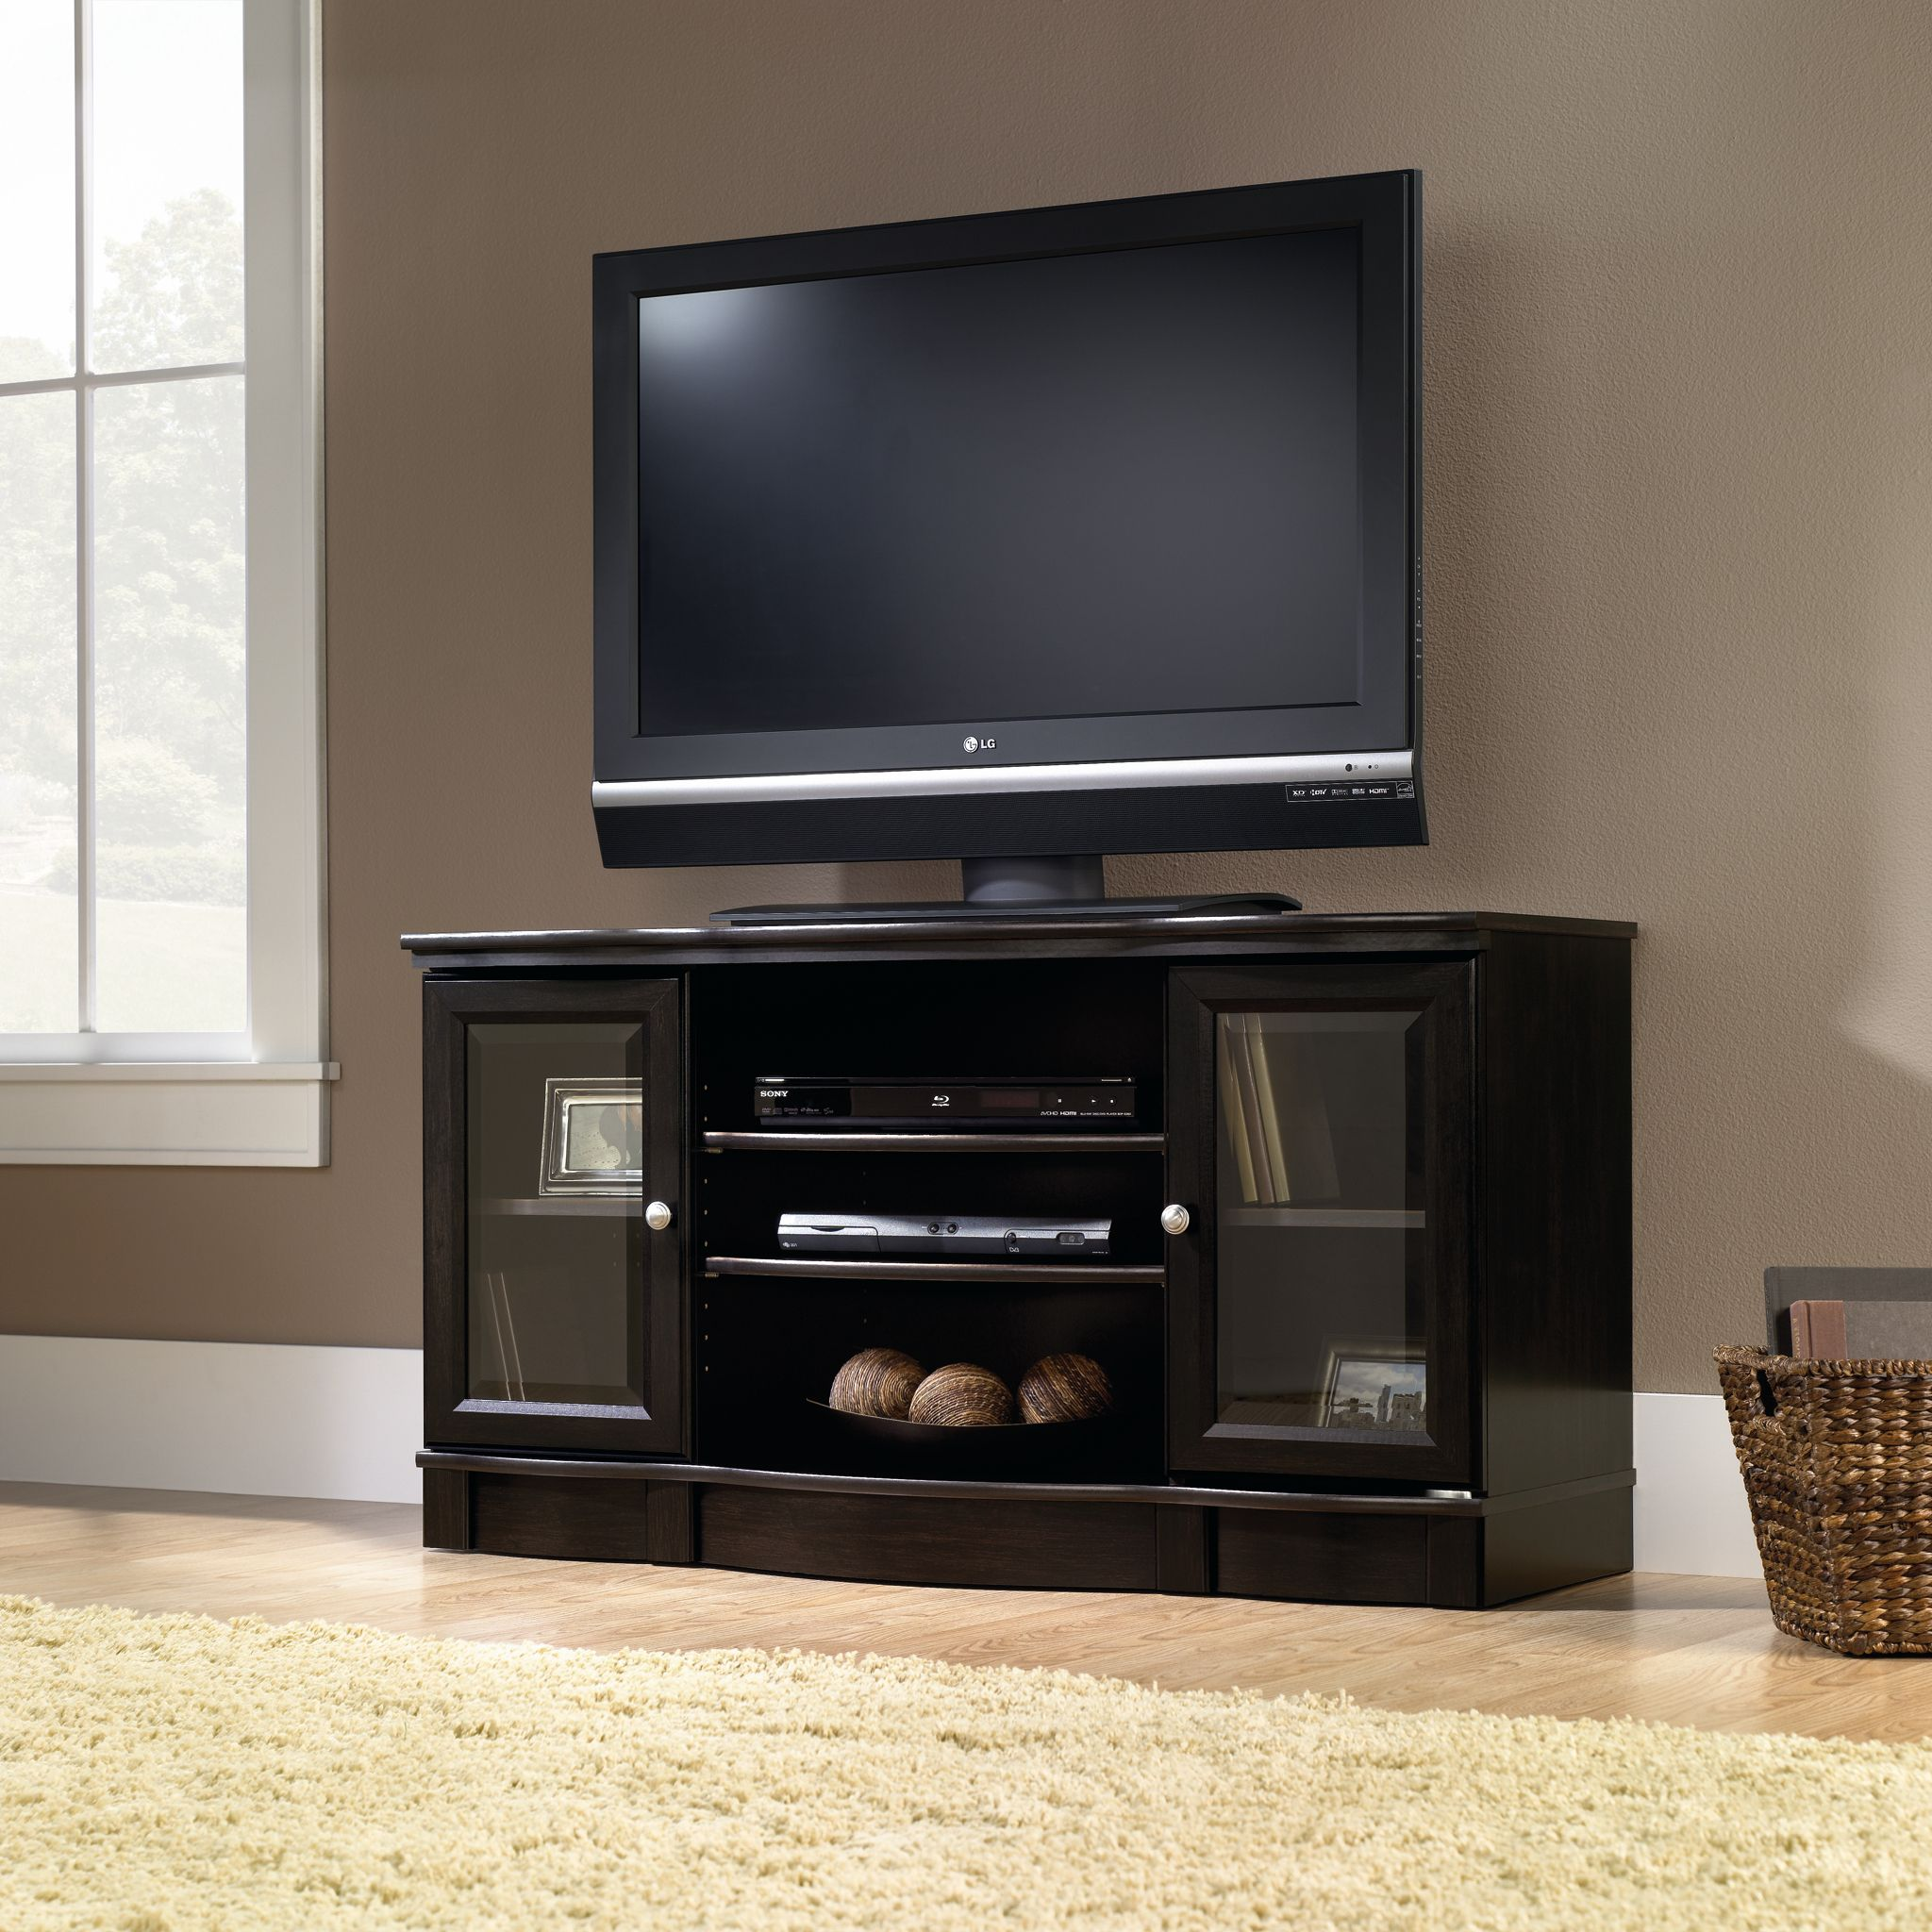 Sauder Regency TV Stand, Estate Black Finish